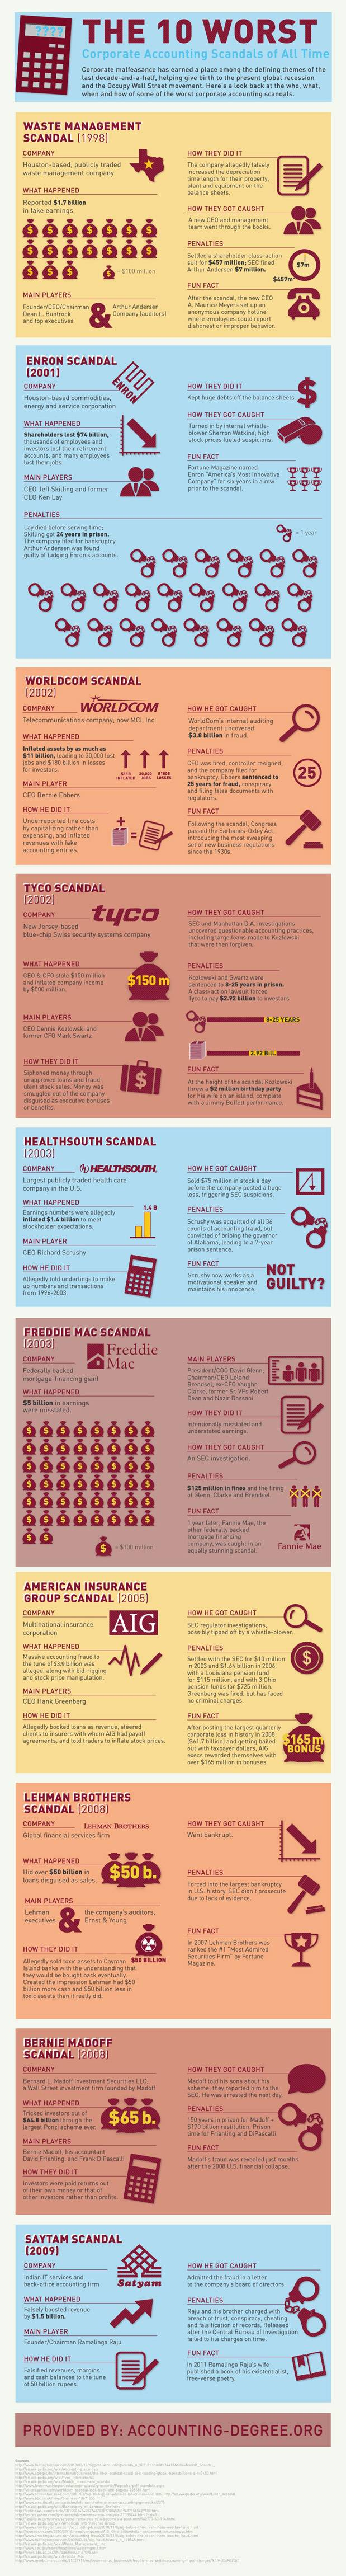 10 Worst Accounting Scandals of the Corporate World